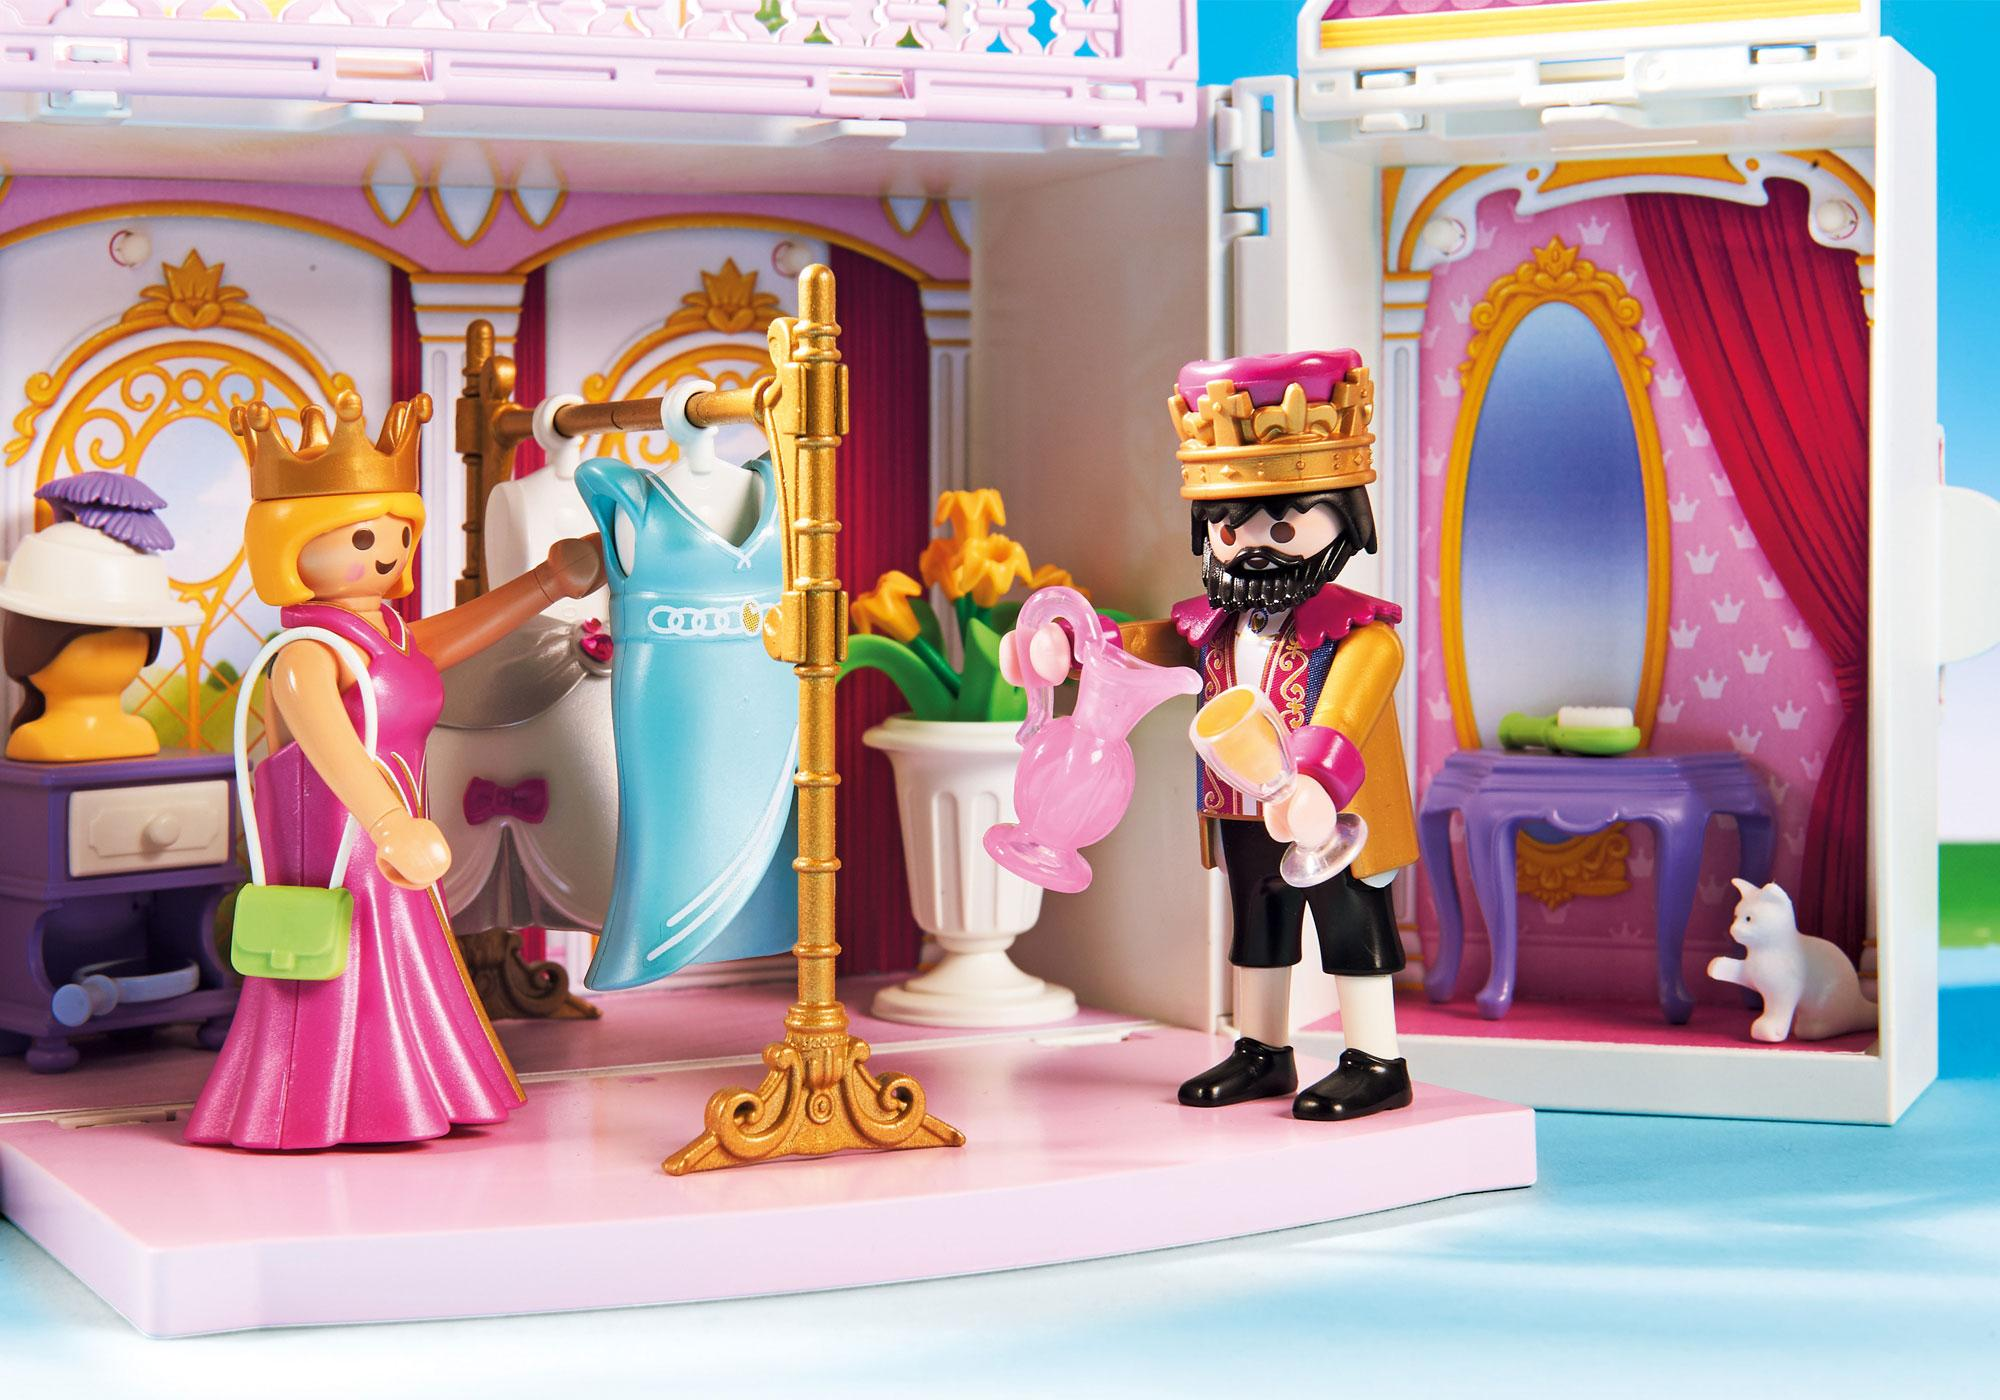 http://media.playmobil.com/i/playmobil/4898_product_extra1